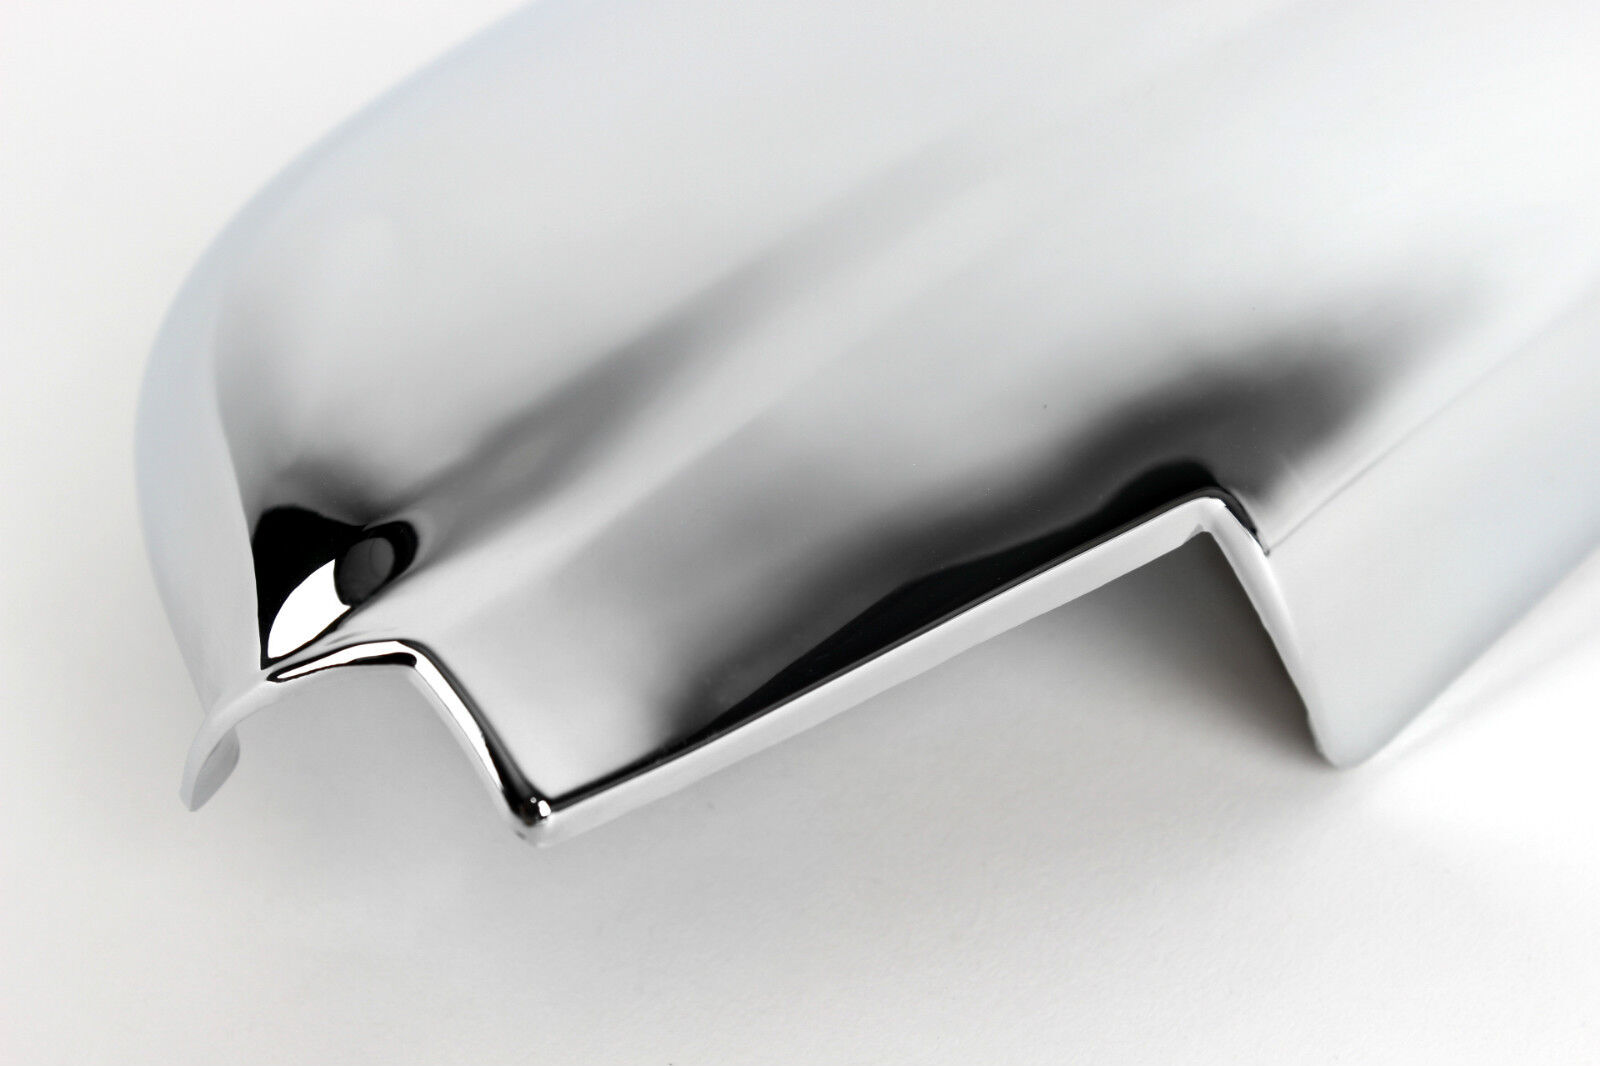 DAEWOO CIELO 1995-1997 CHROME SIDE MIRROR COVER